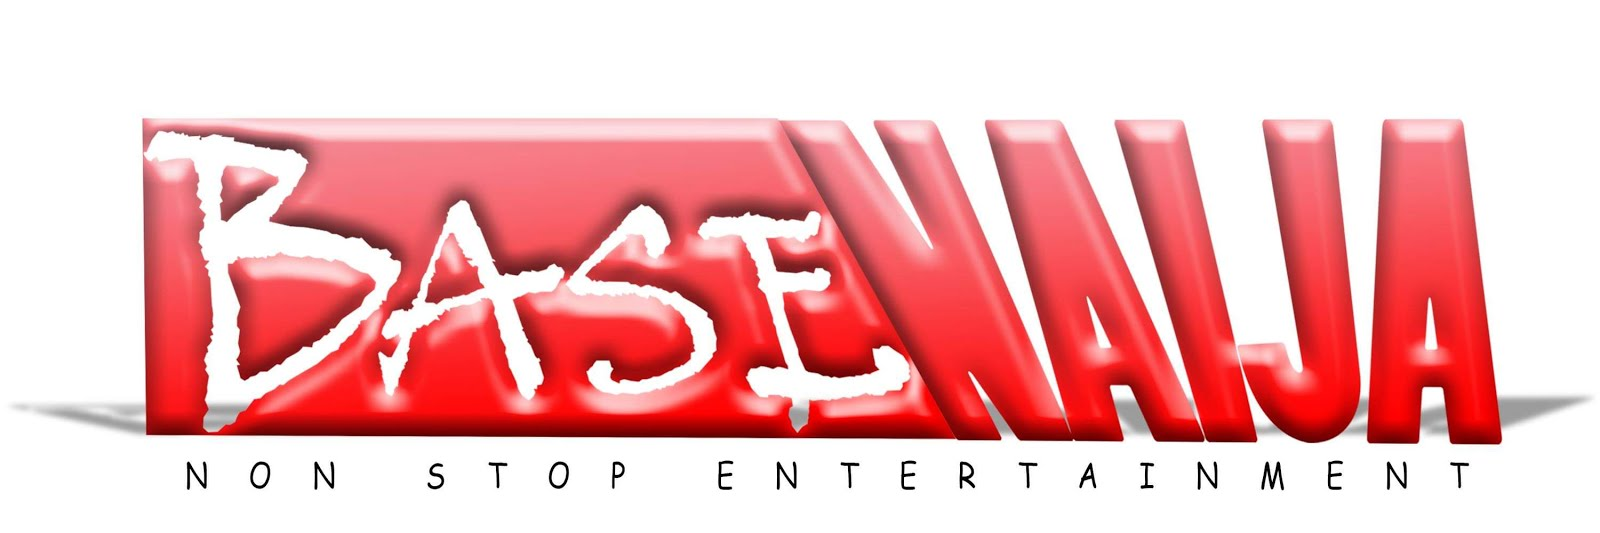 Basenaija | Latest Nigerian News & Entertainment Website